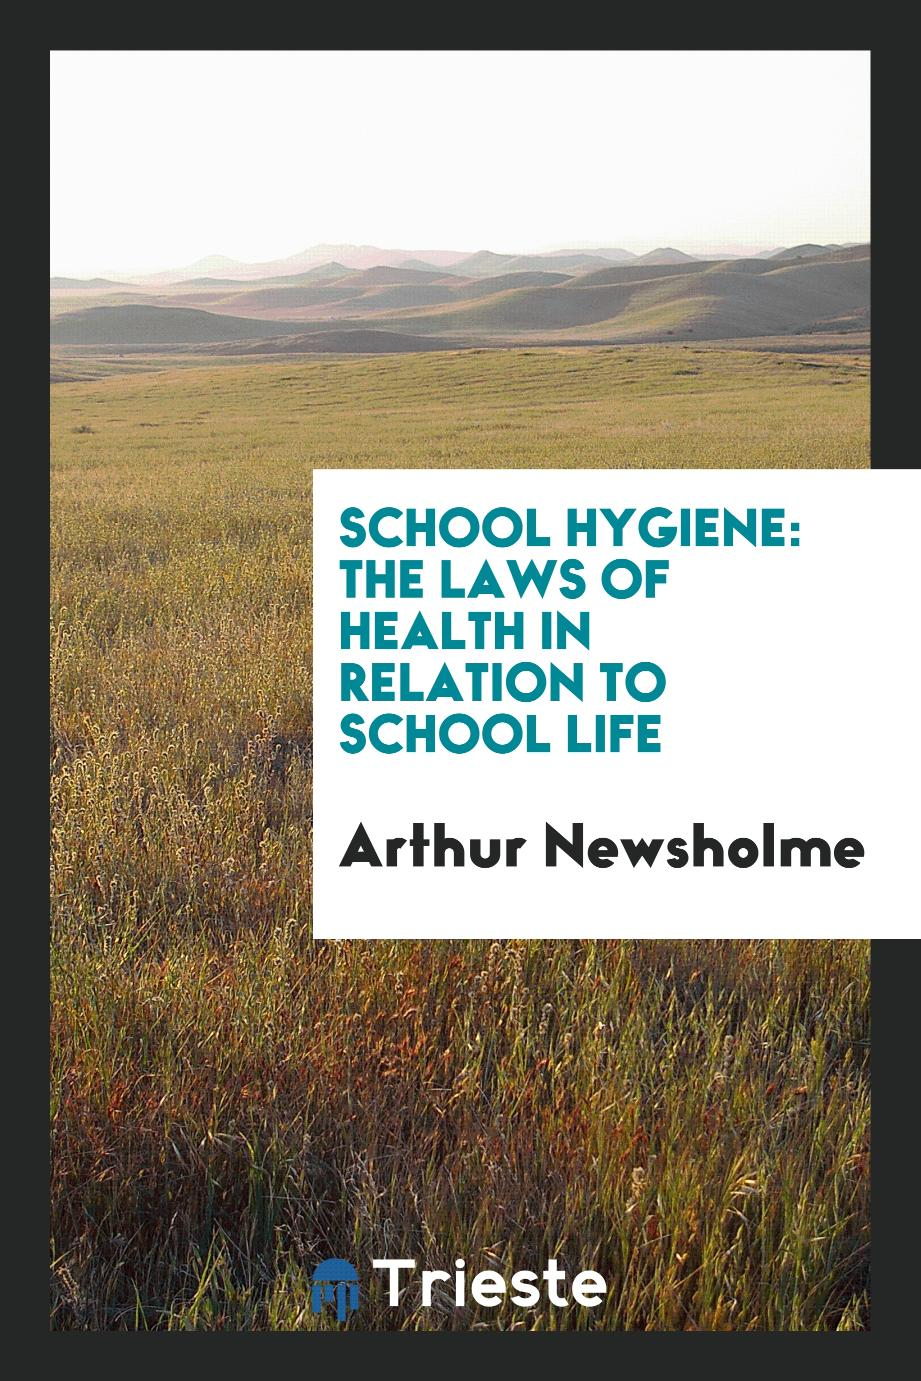 School Hygiene: The Laws of Health in Relation to School Life